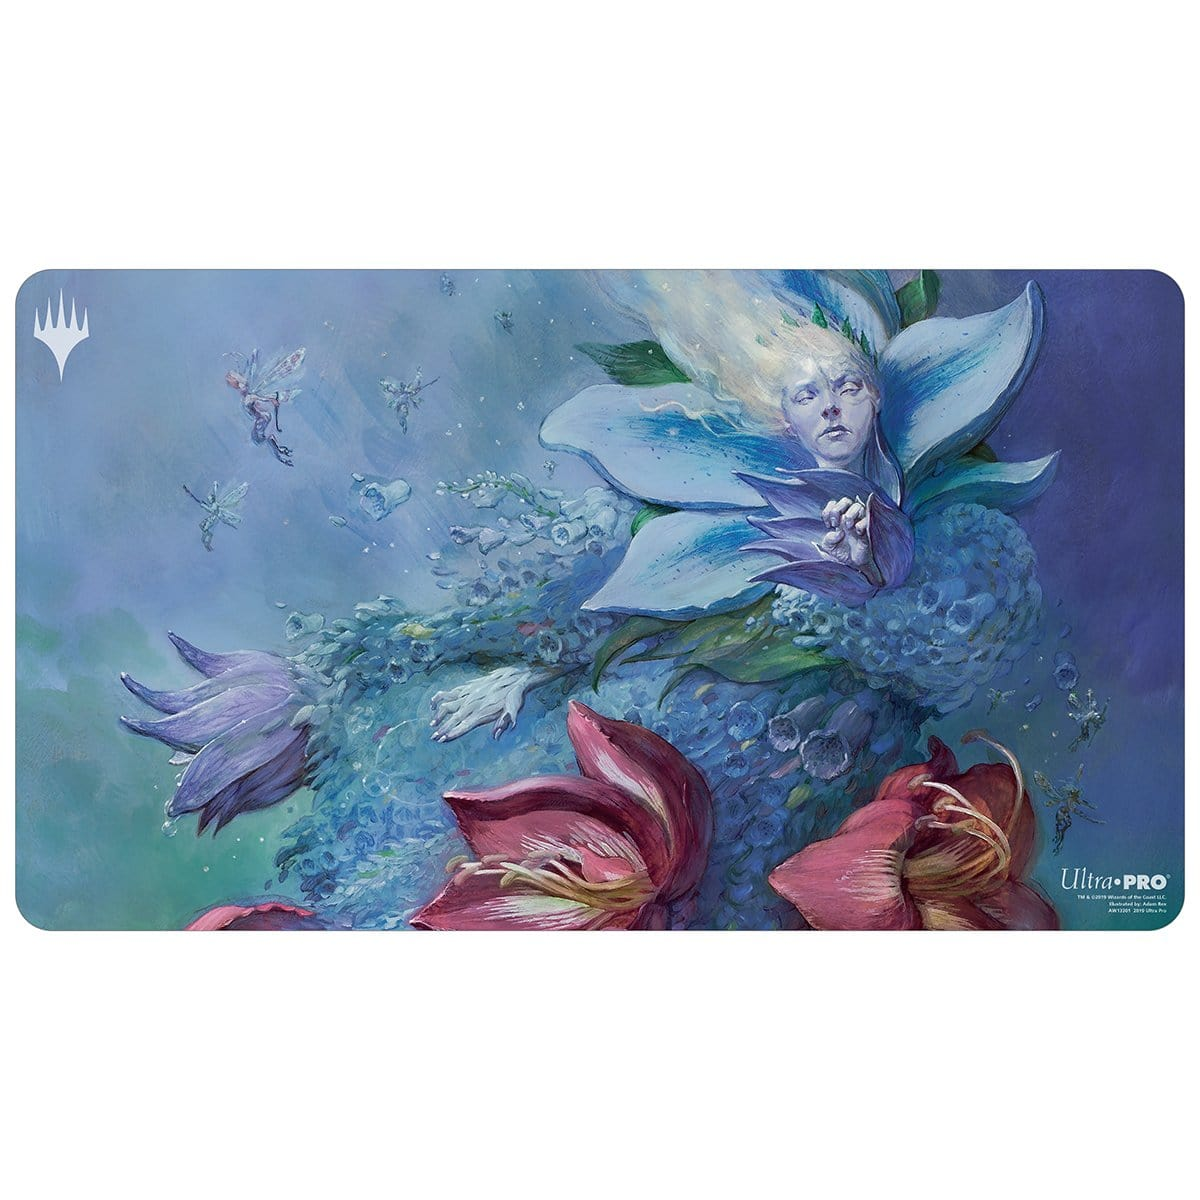 Oona, Queen of the Fae Playmat - Playmat - Original Magic Art - Accessories for Magic the Gathering and other card games